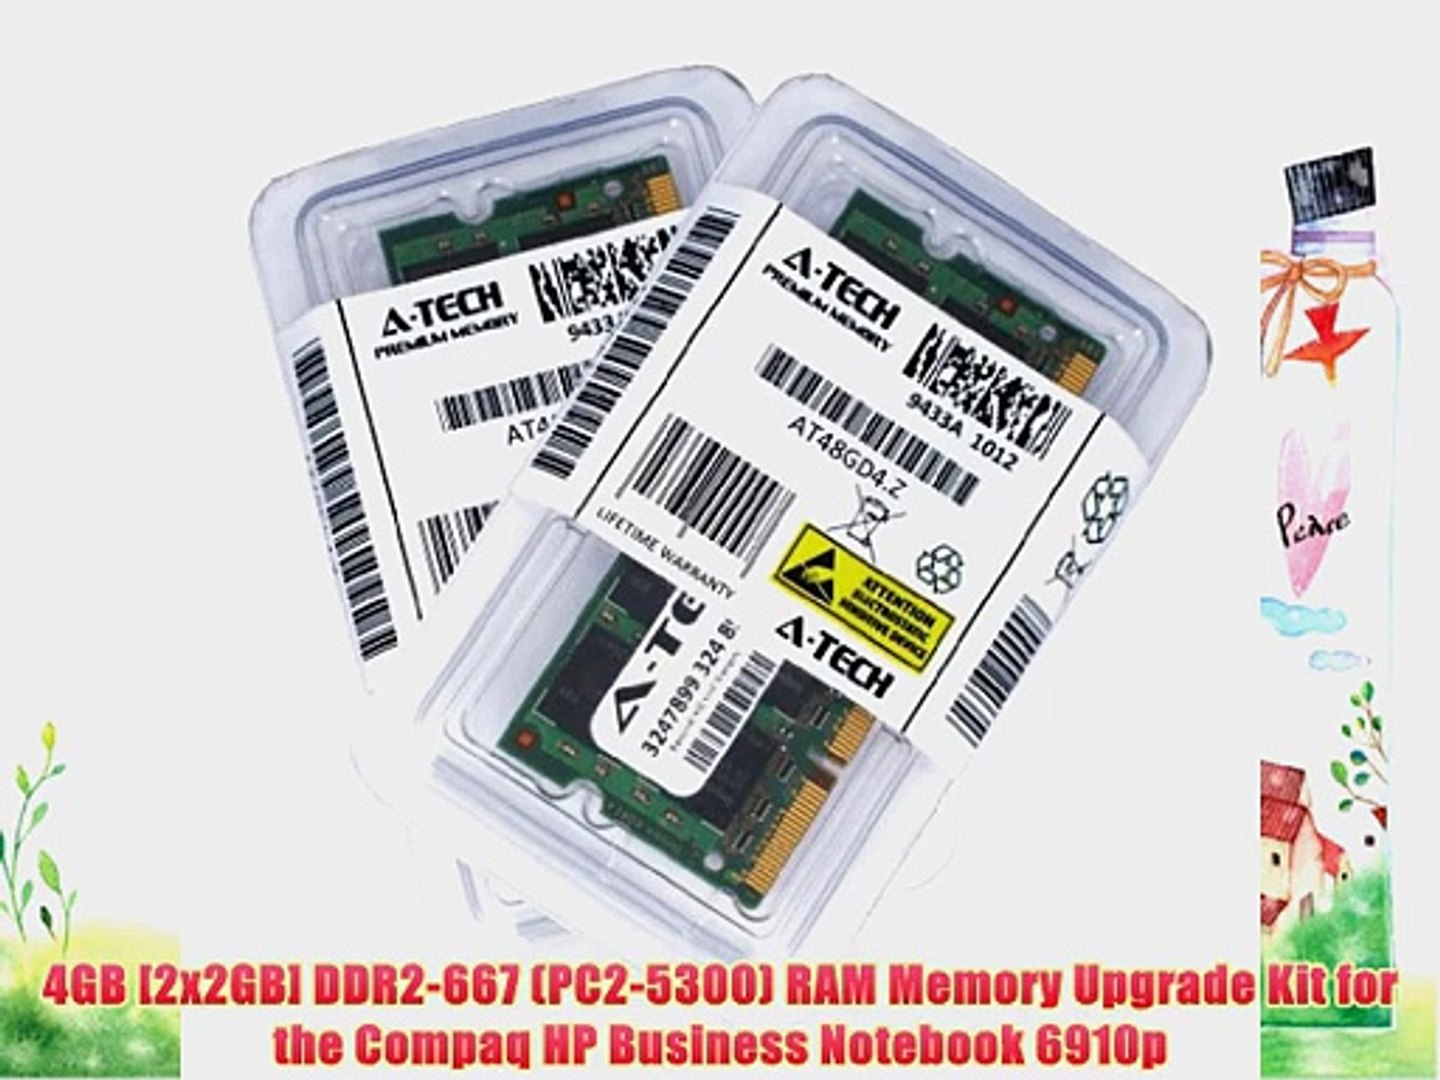 4GB [2x2GB] DDR2-667 (PC2-5300) RAM Memory Upgrade Kit for the Compaq HP Business Notebook